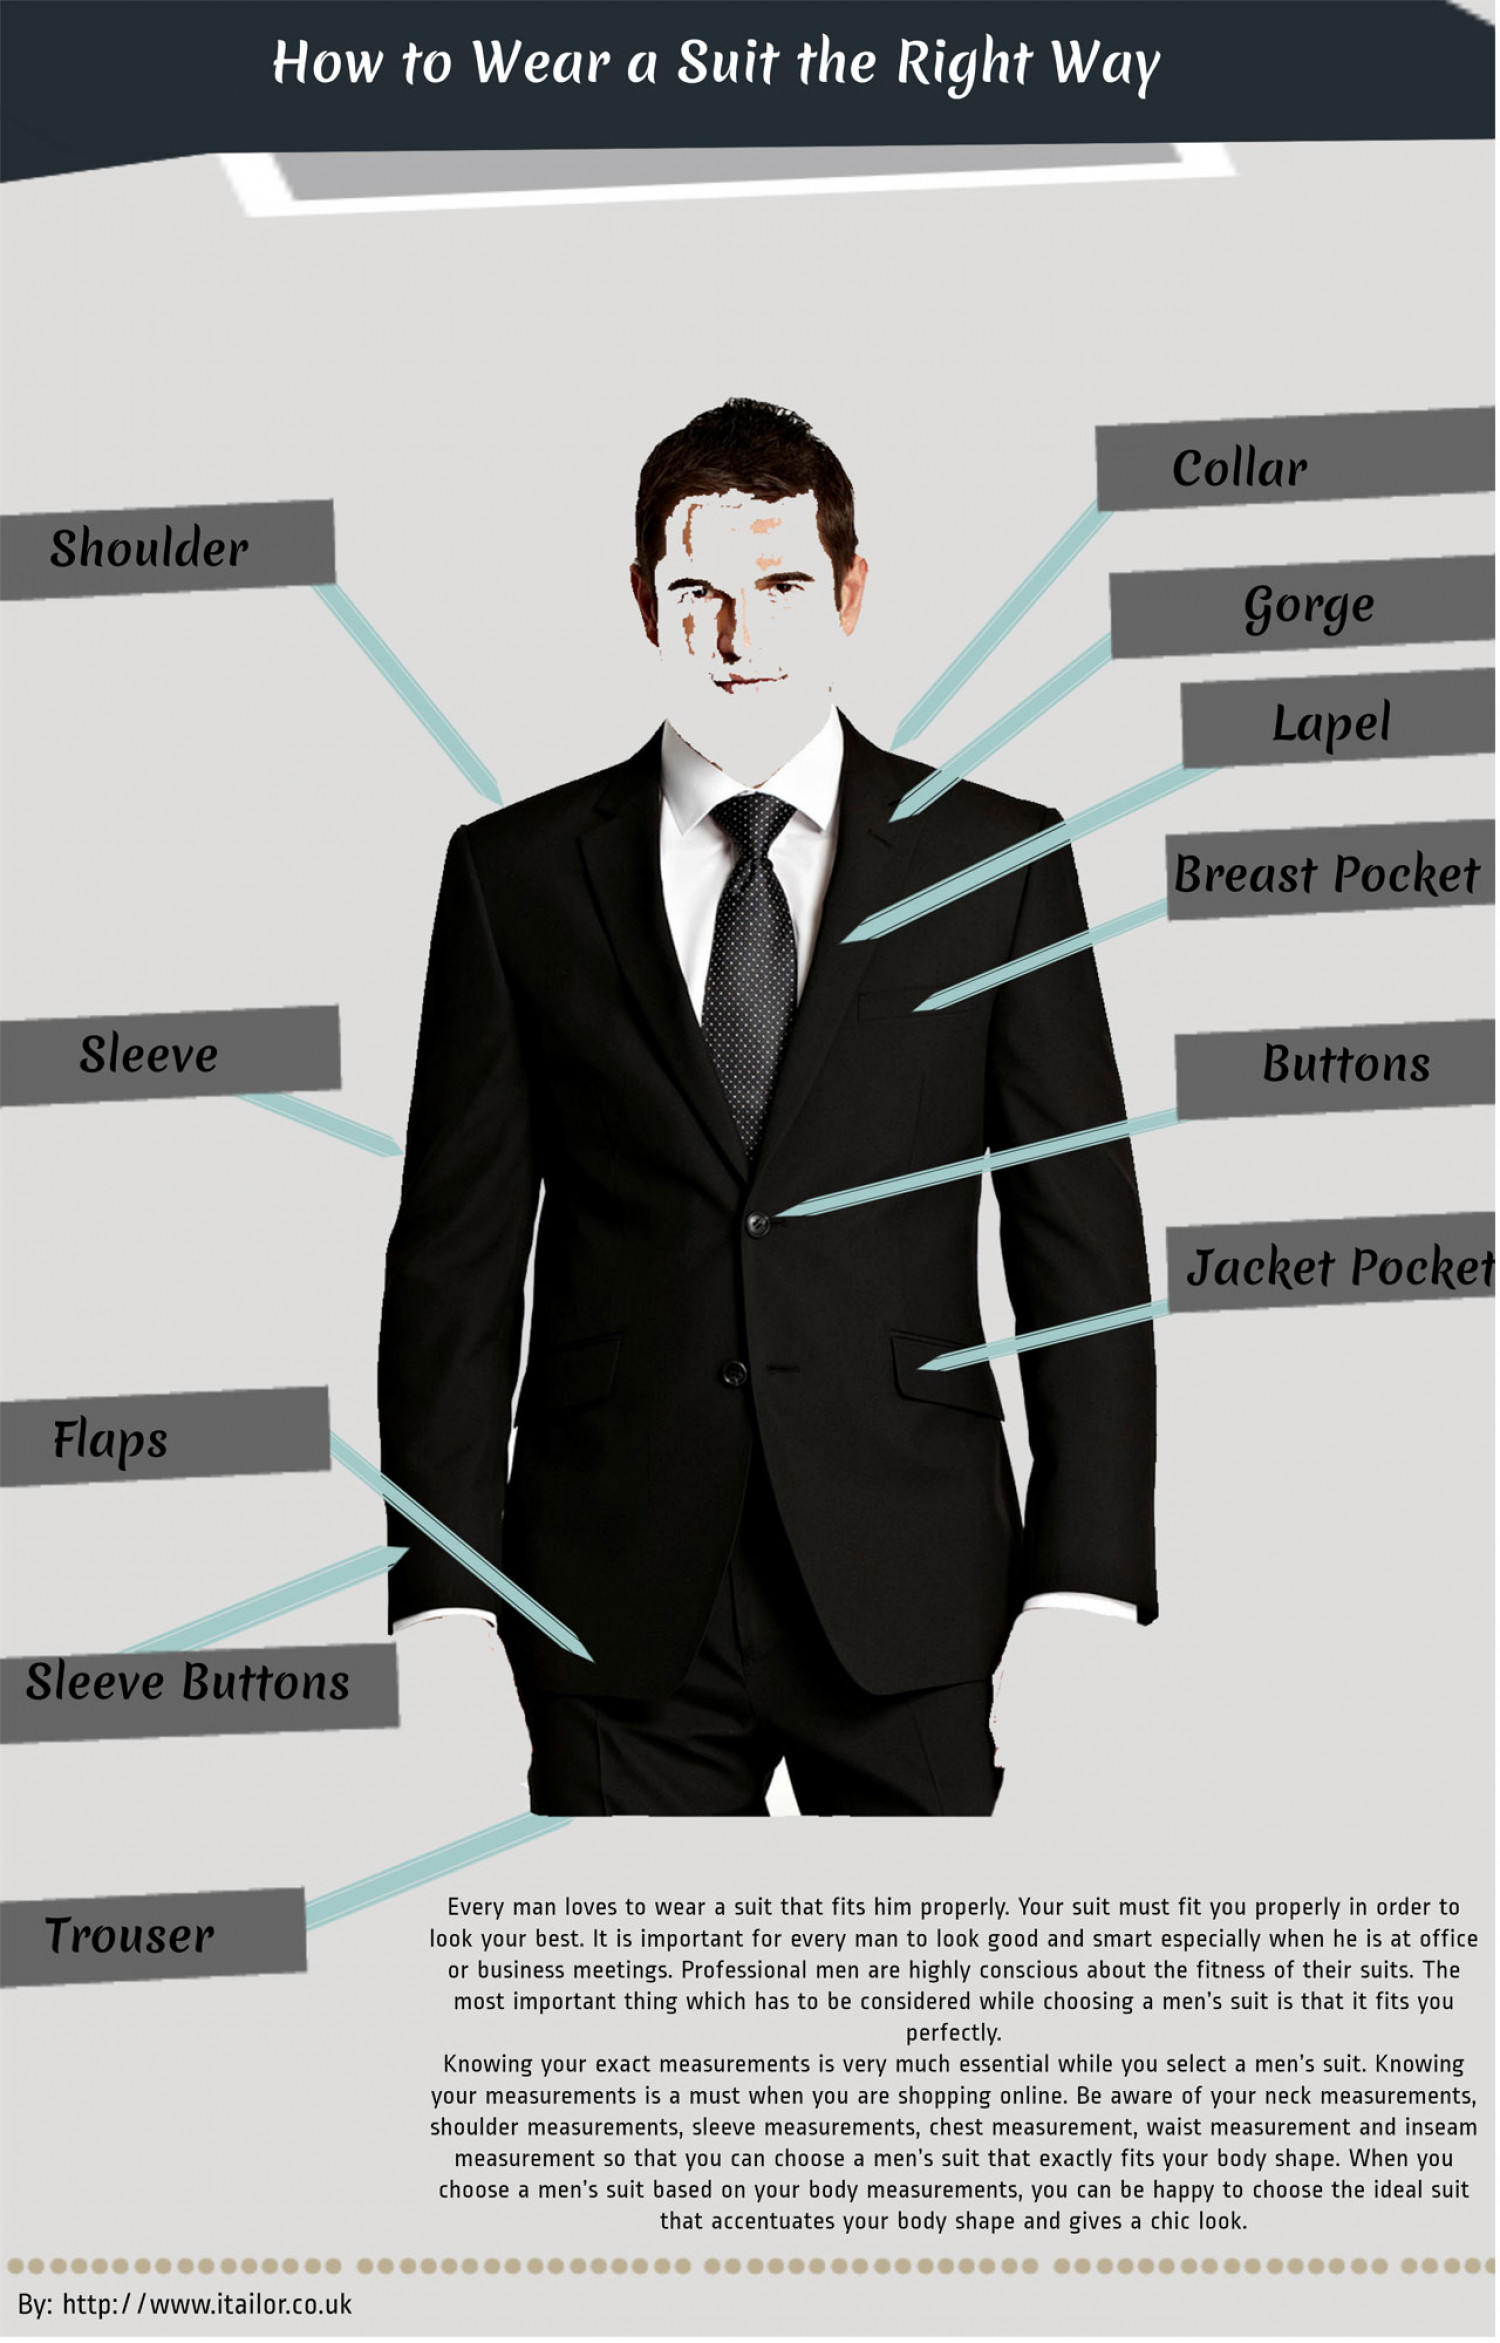 How To Wear A Suit The Right Way  Infographic